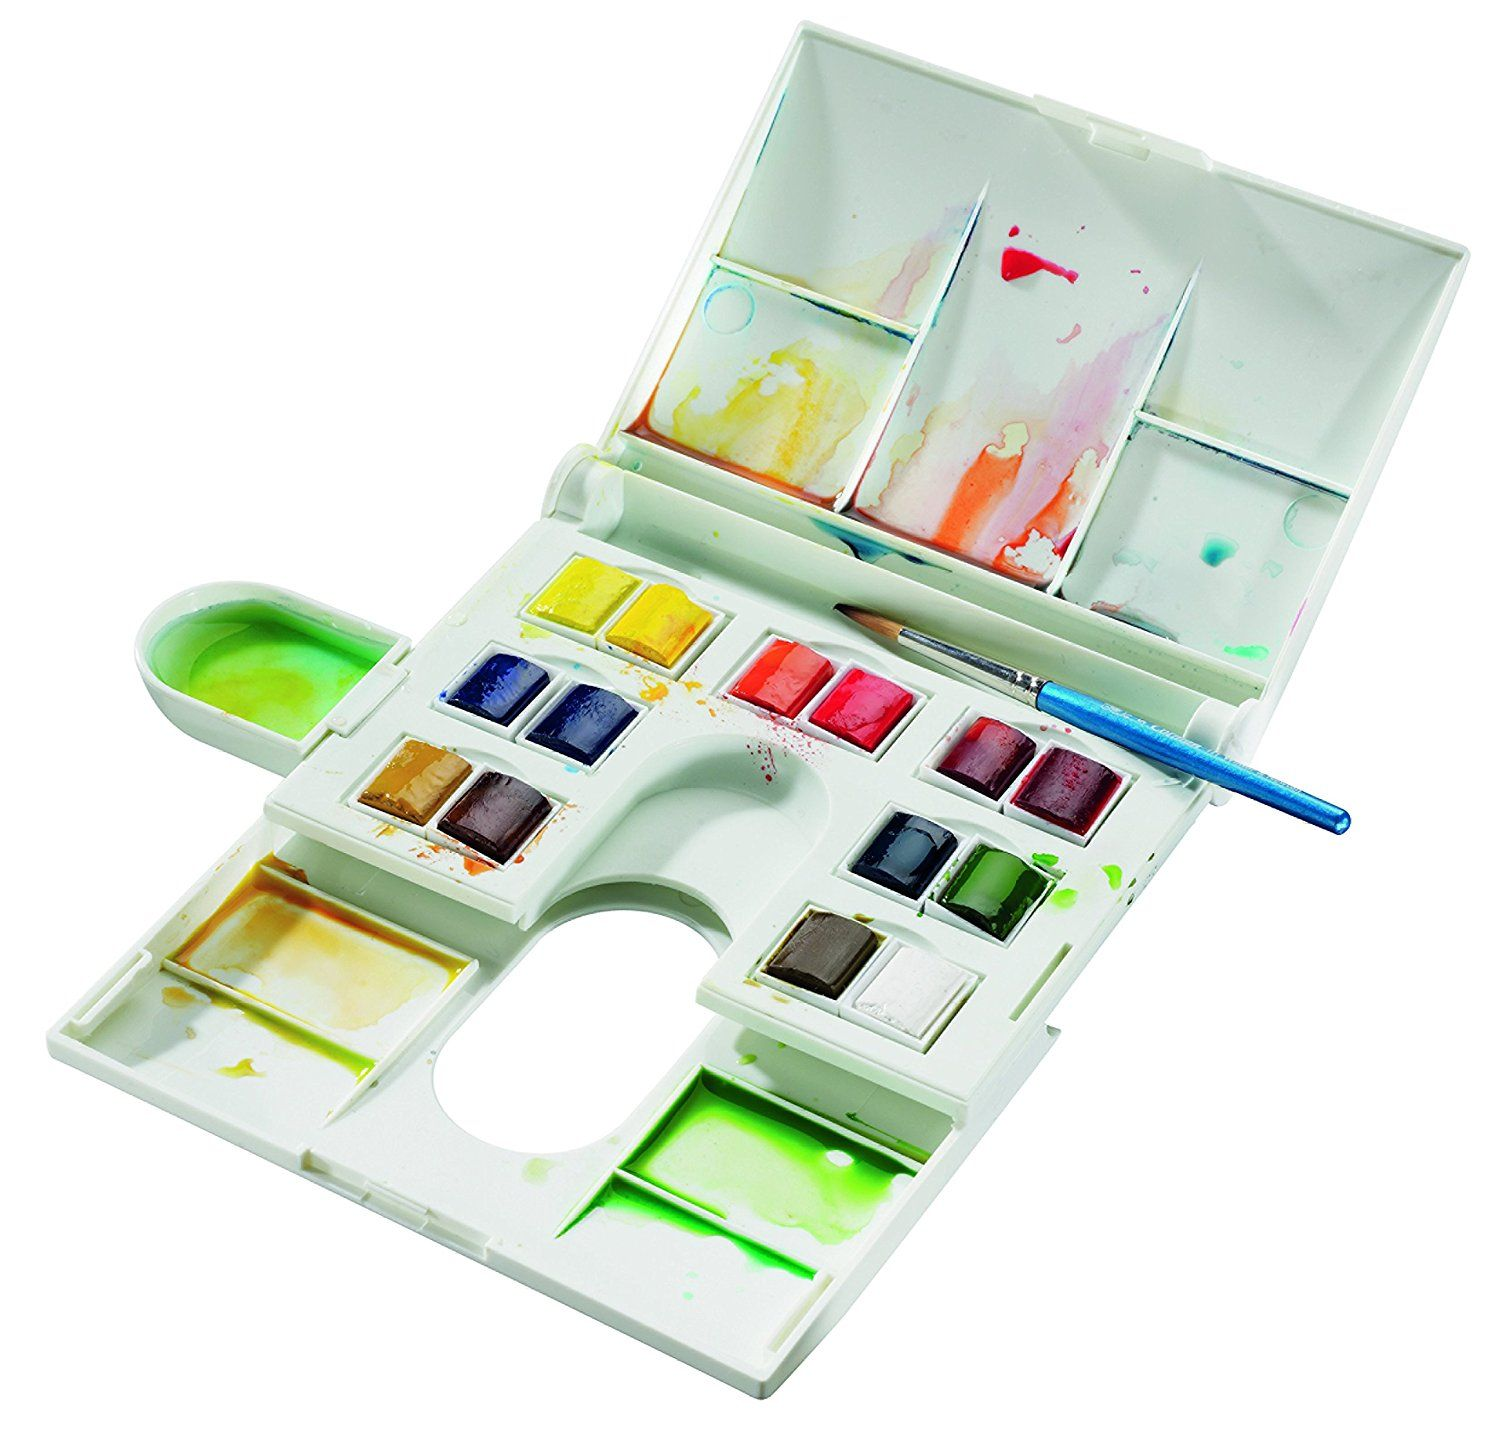 WINSOR & NEWTON SKETCHER'S COMPACT SET - CLEARANCE SALE